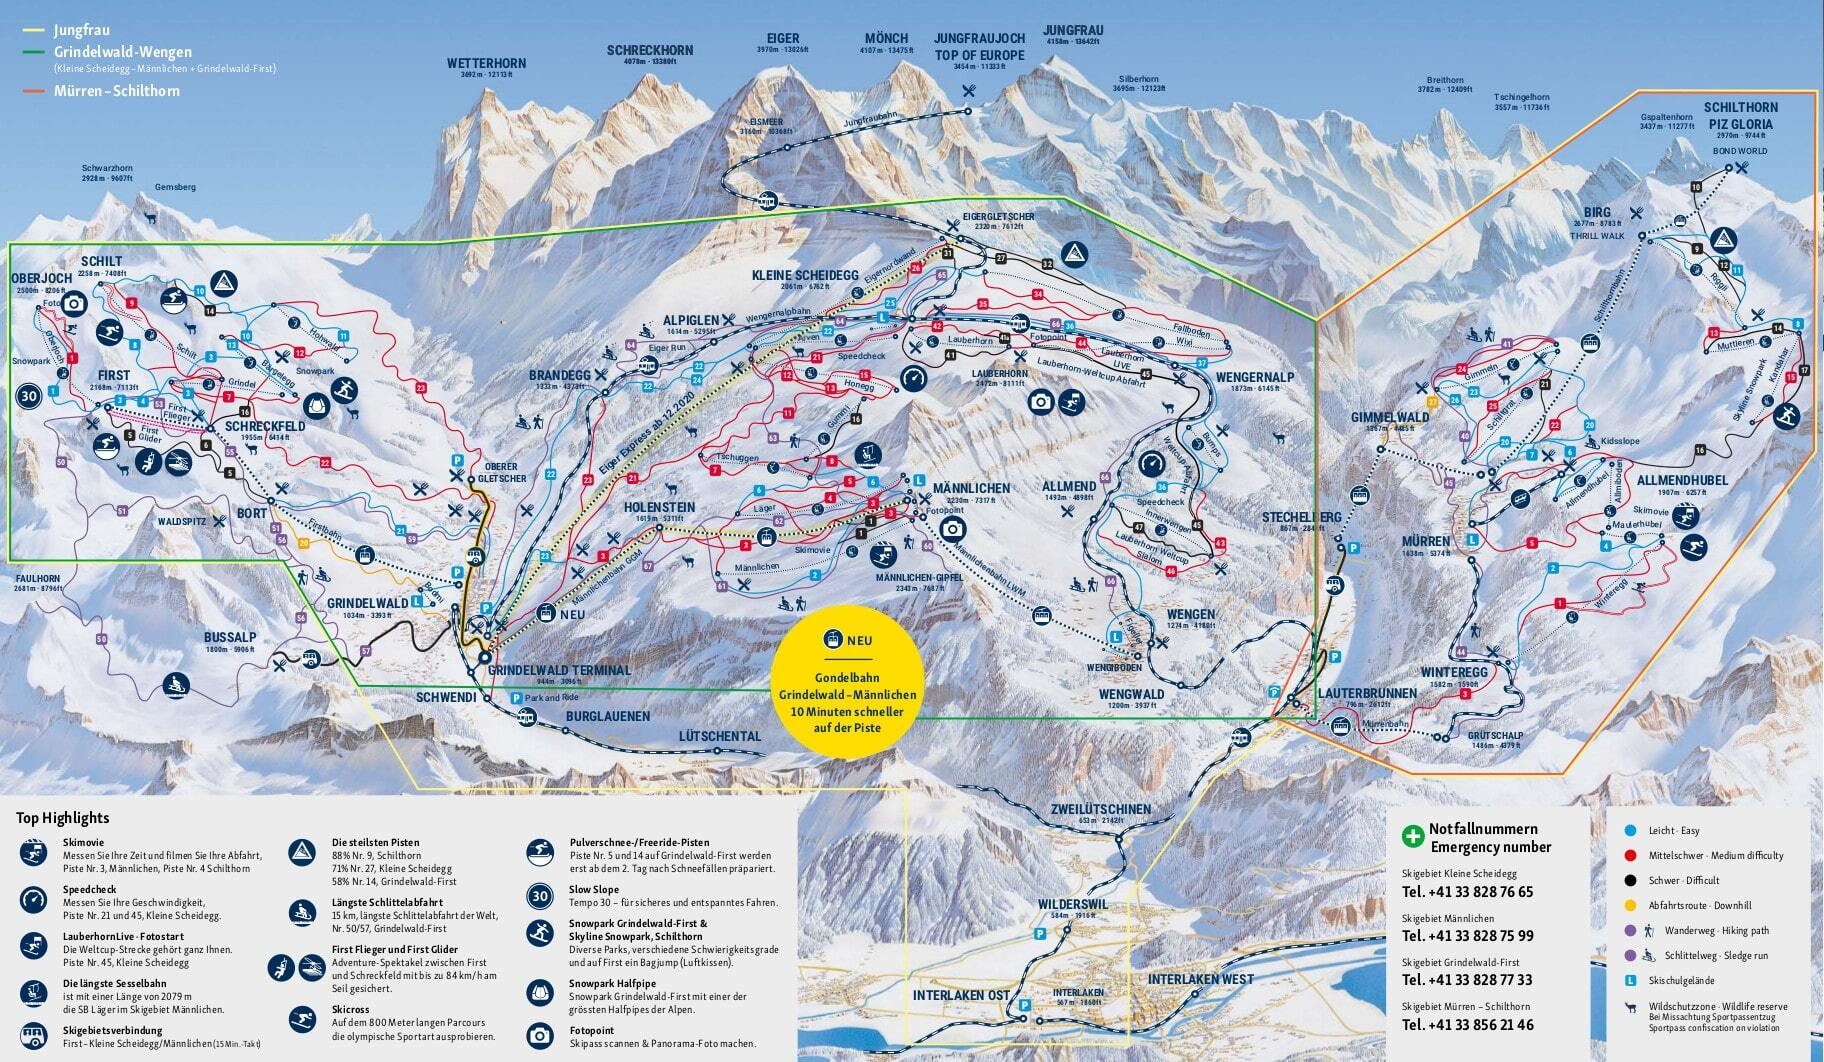 Lauterbrunnen Piste / Trail Map